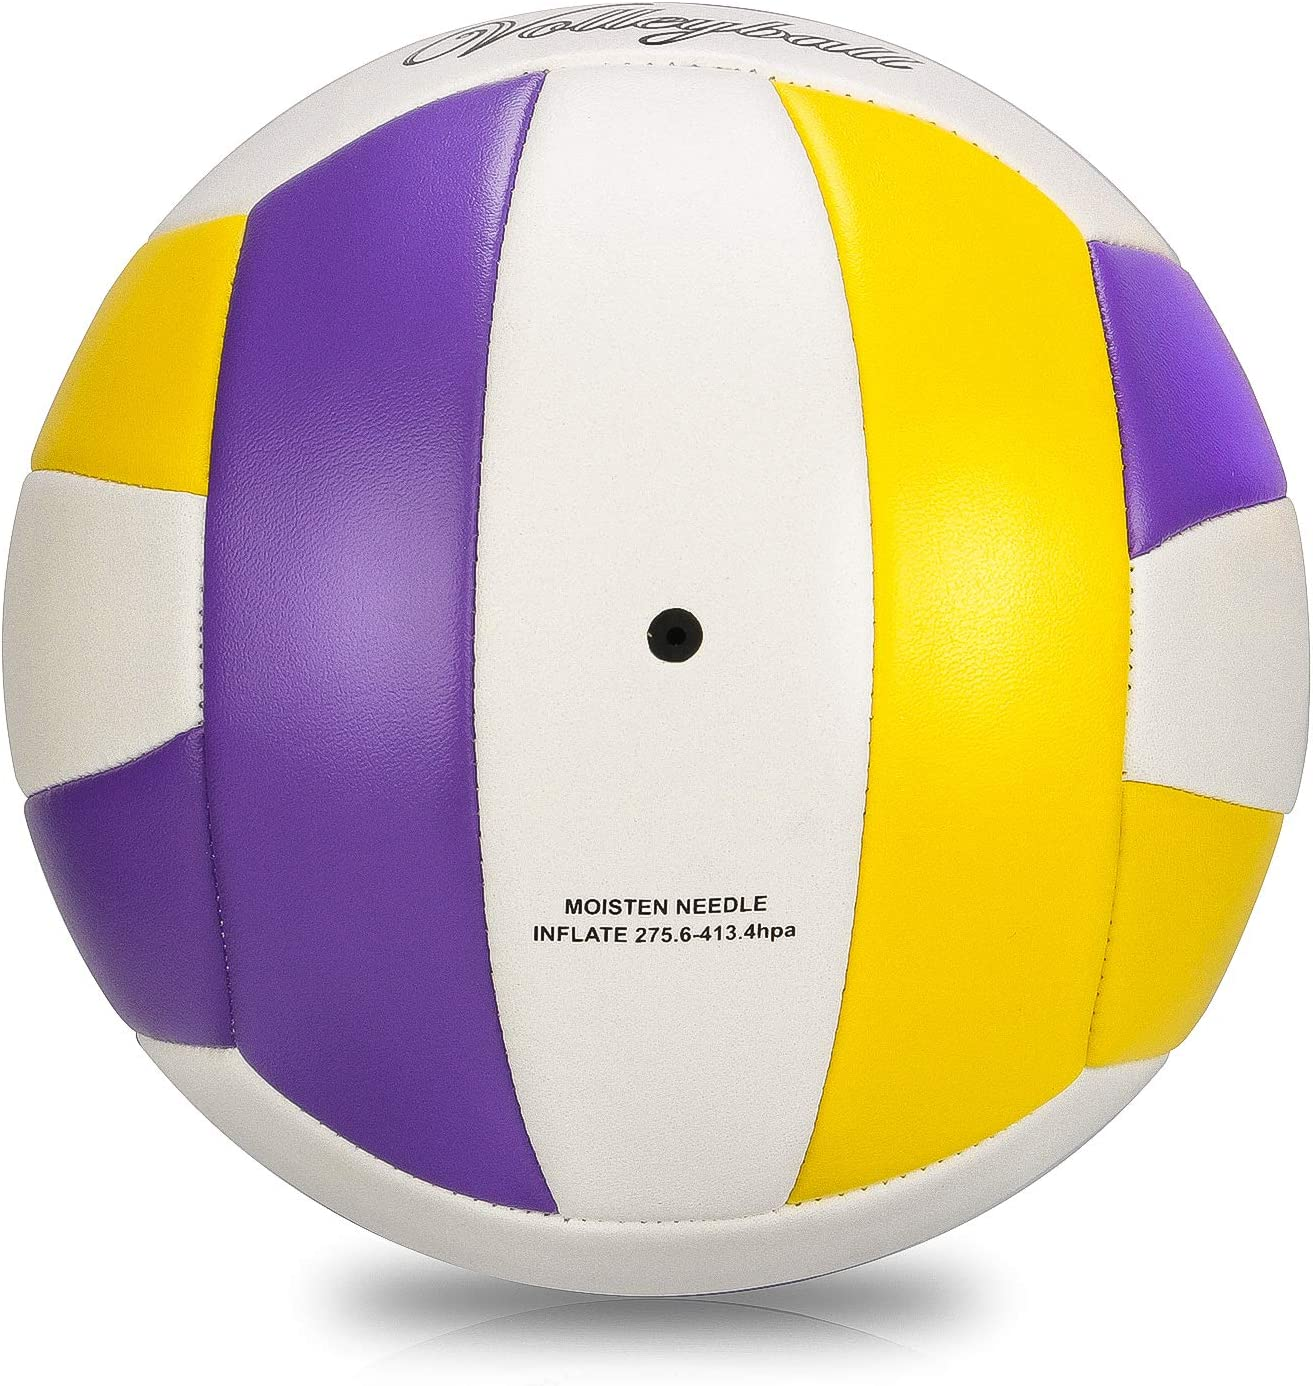 Volleyball Beachvolleyball Soft Touch Volleyballs for Outdoor//Indoor Games Official Size 5